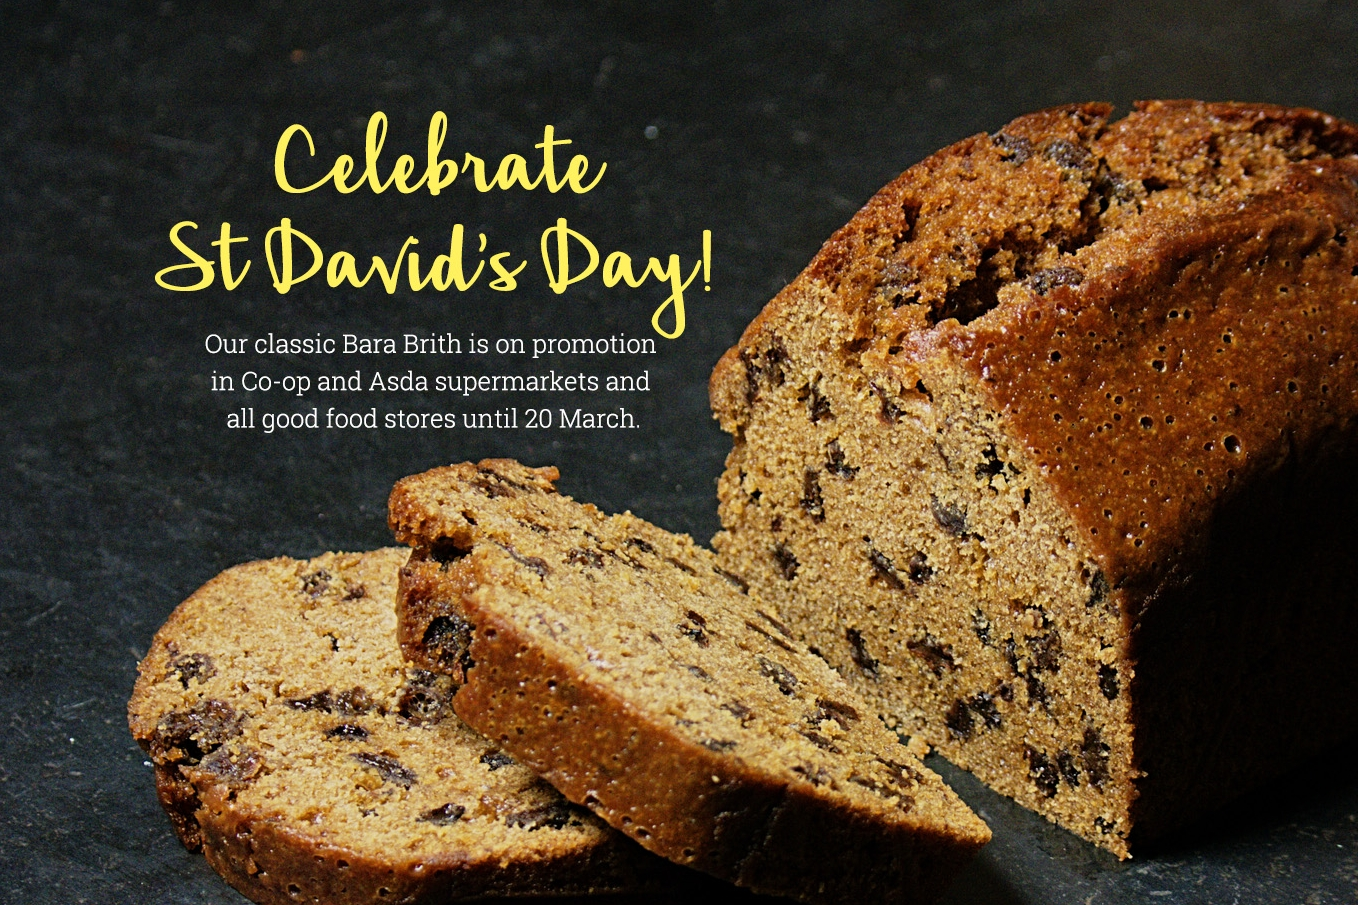 St David's Day Bara Brith